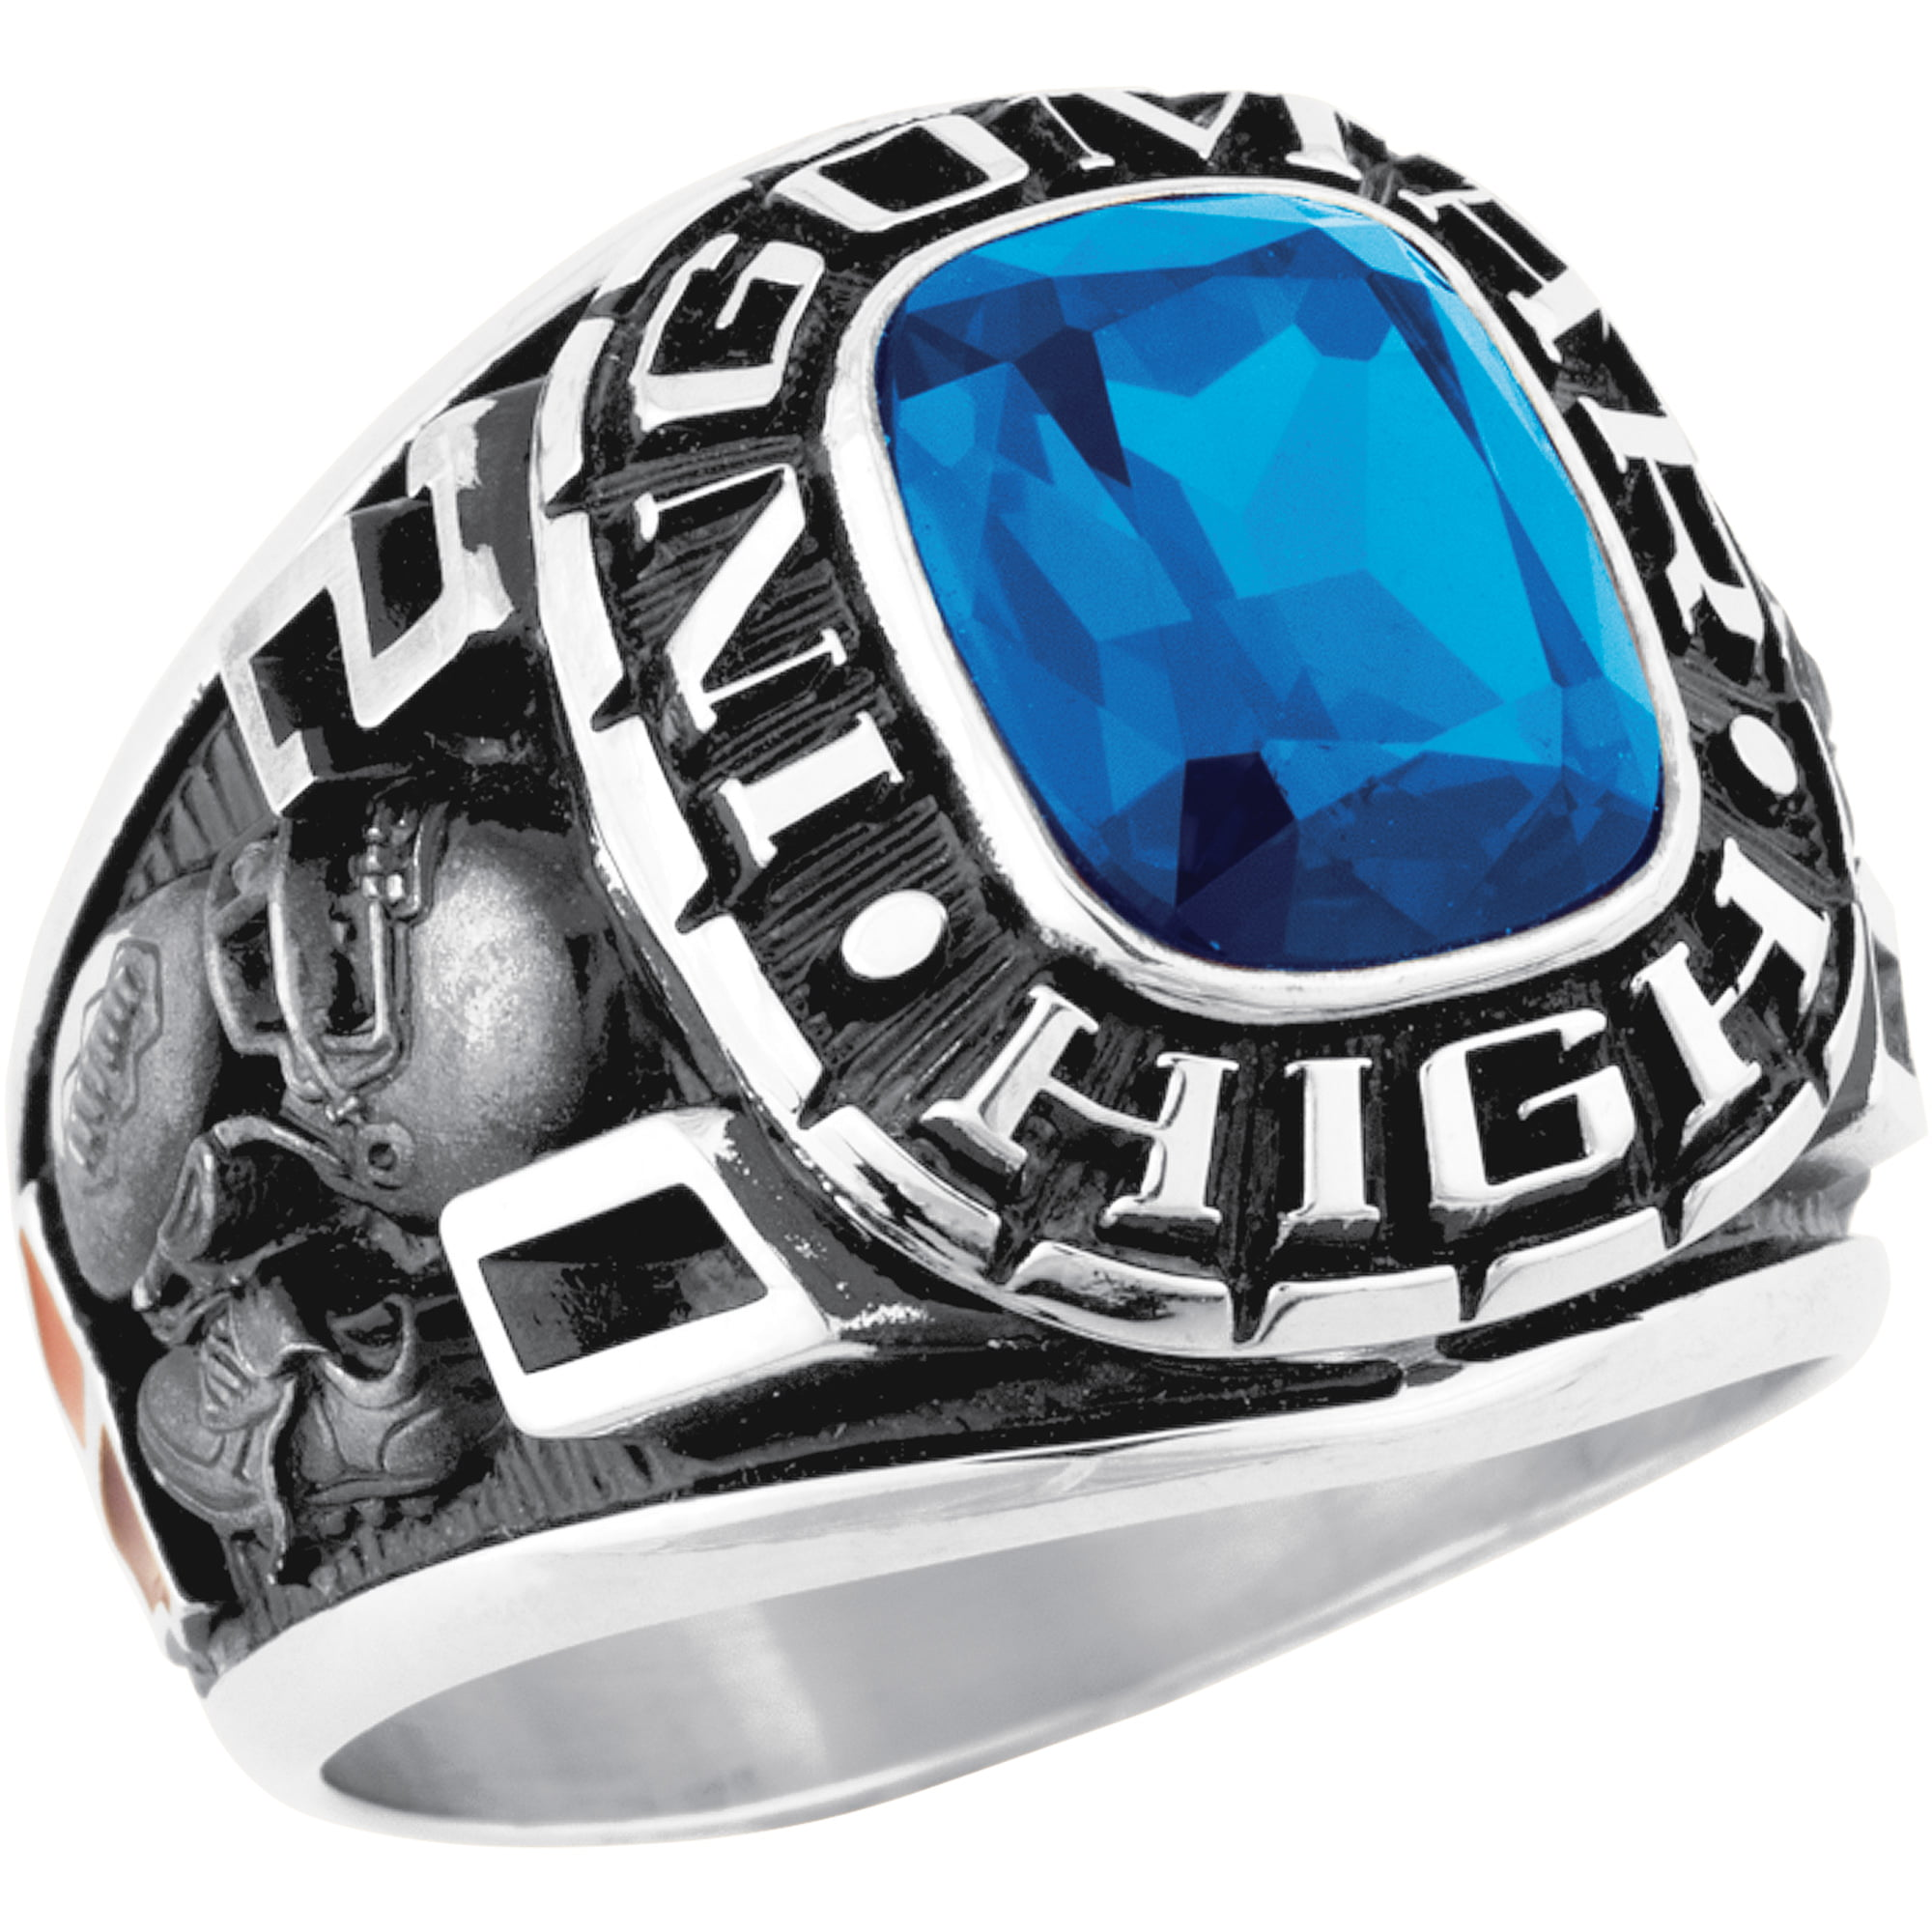 rings jones page herffjoneshs ring school docs final by herff digital issuu catalog softball high